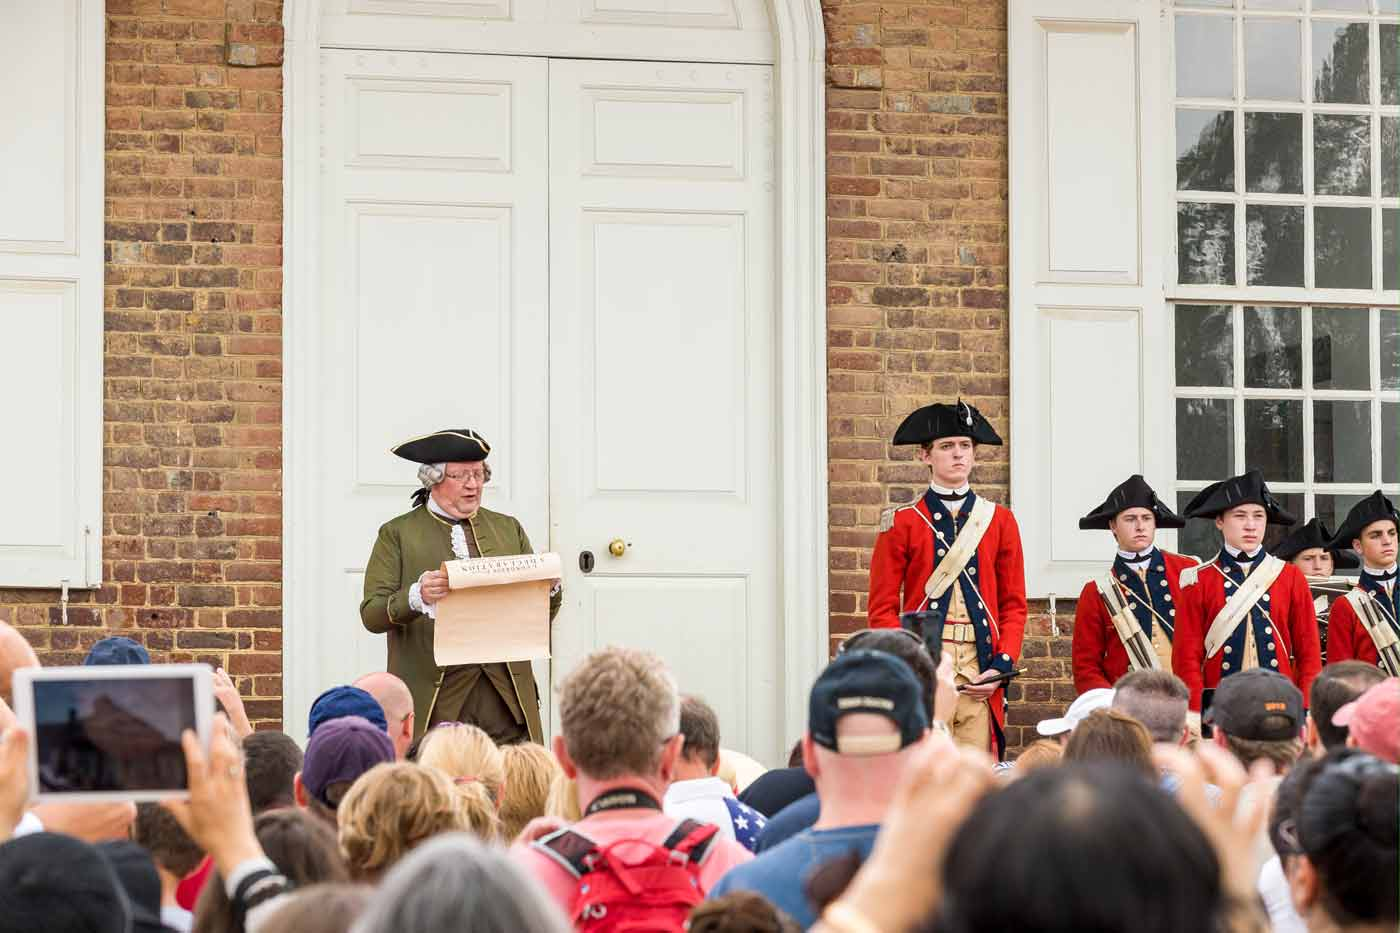 Noon Reading of the Declaration of Independence